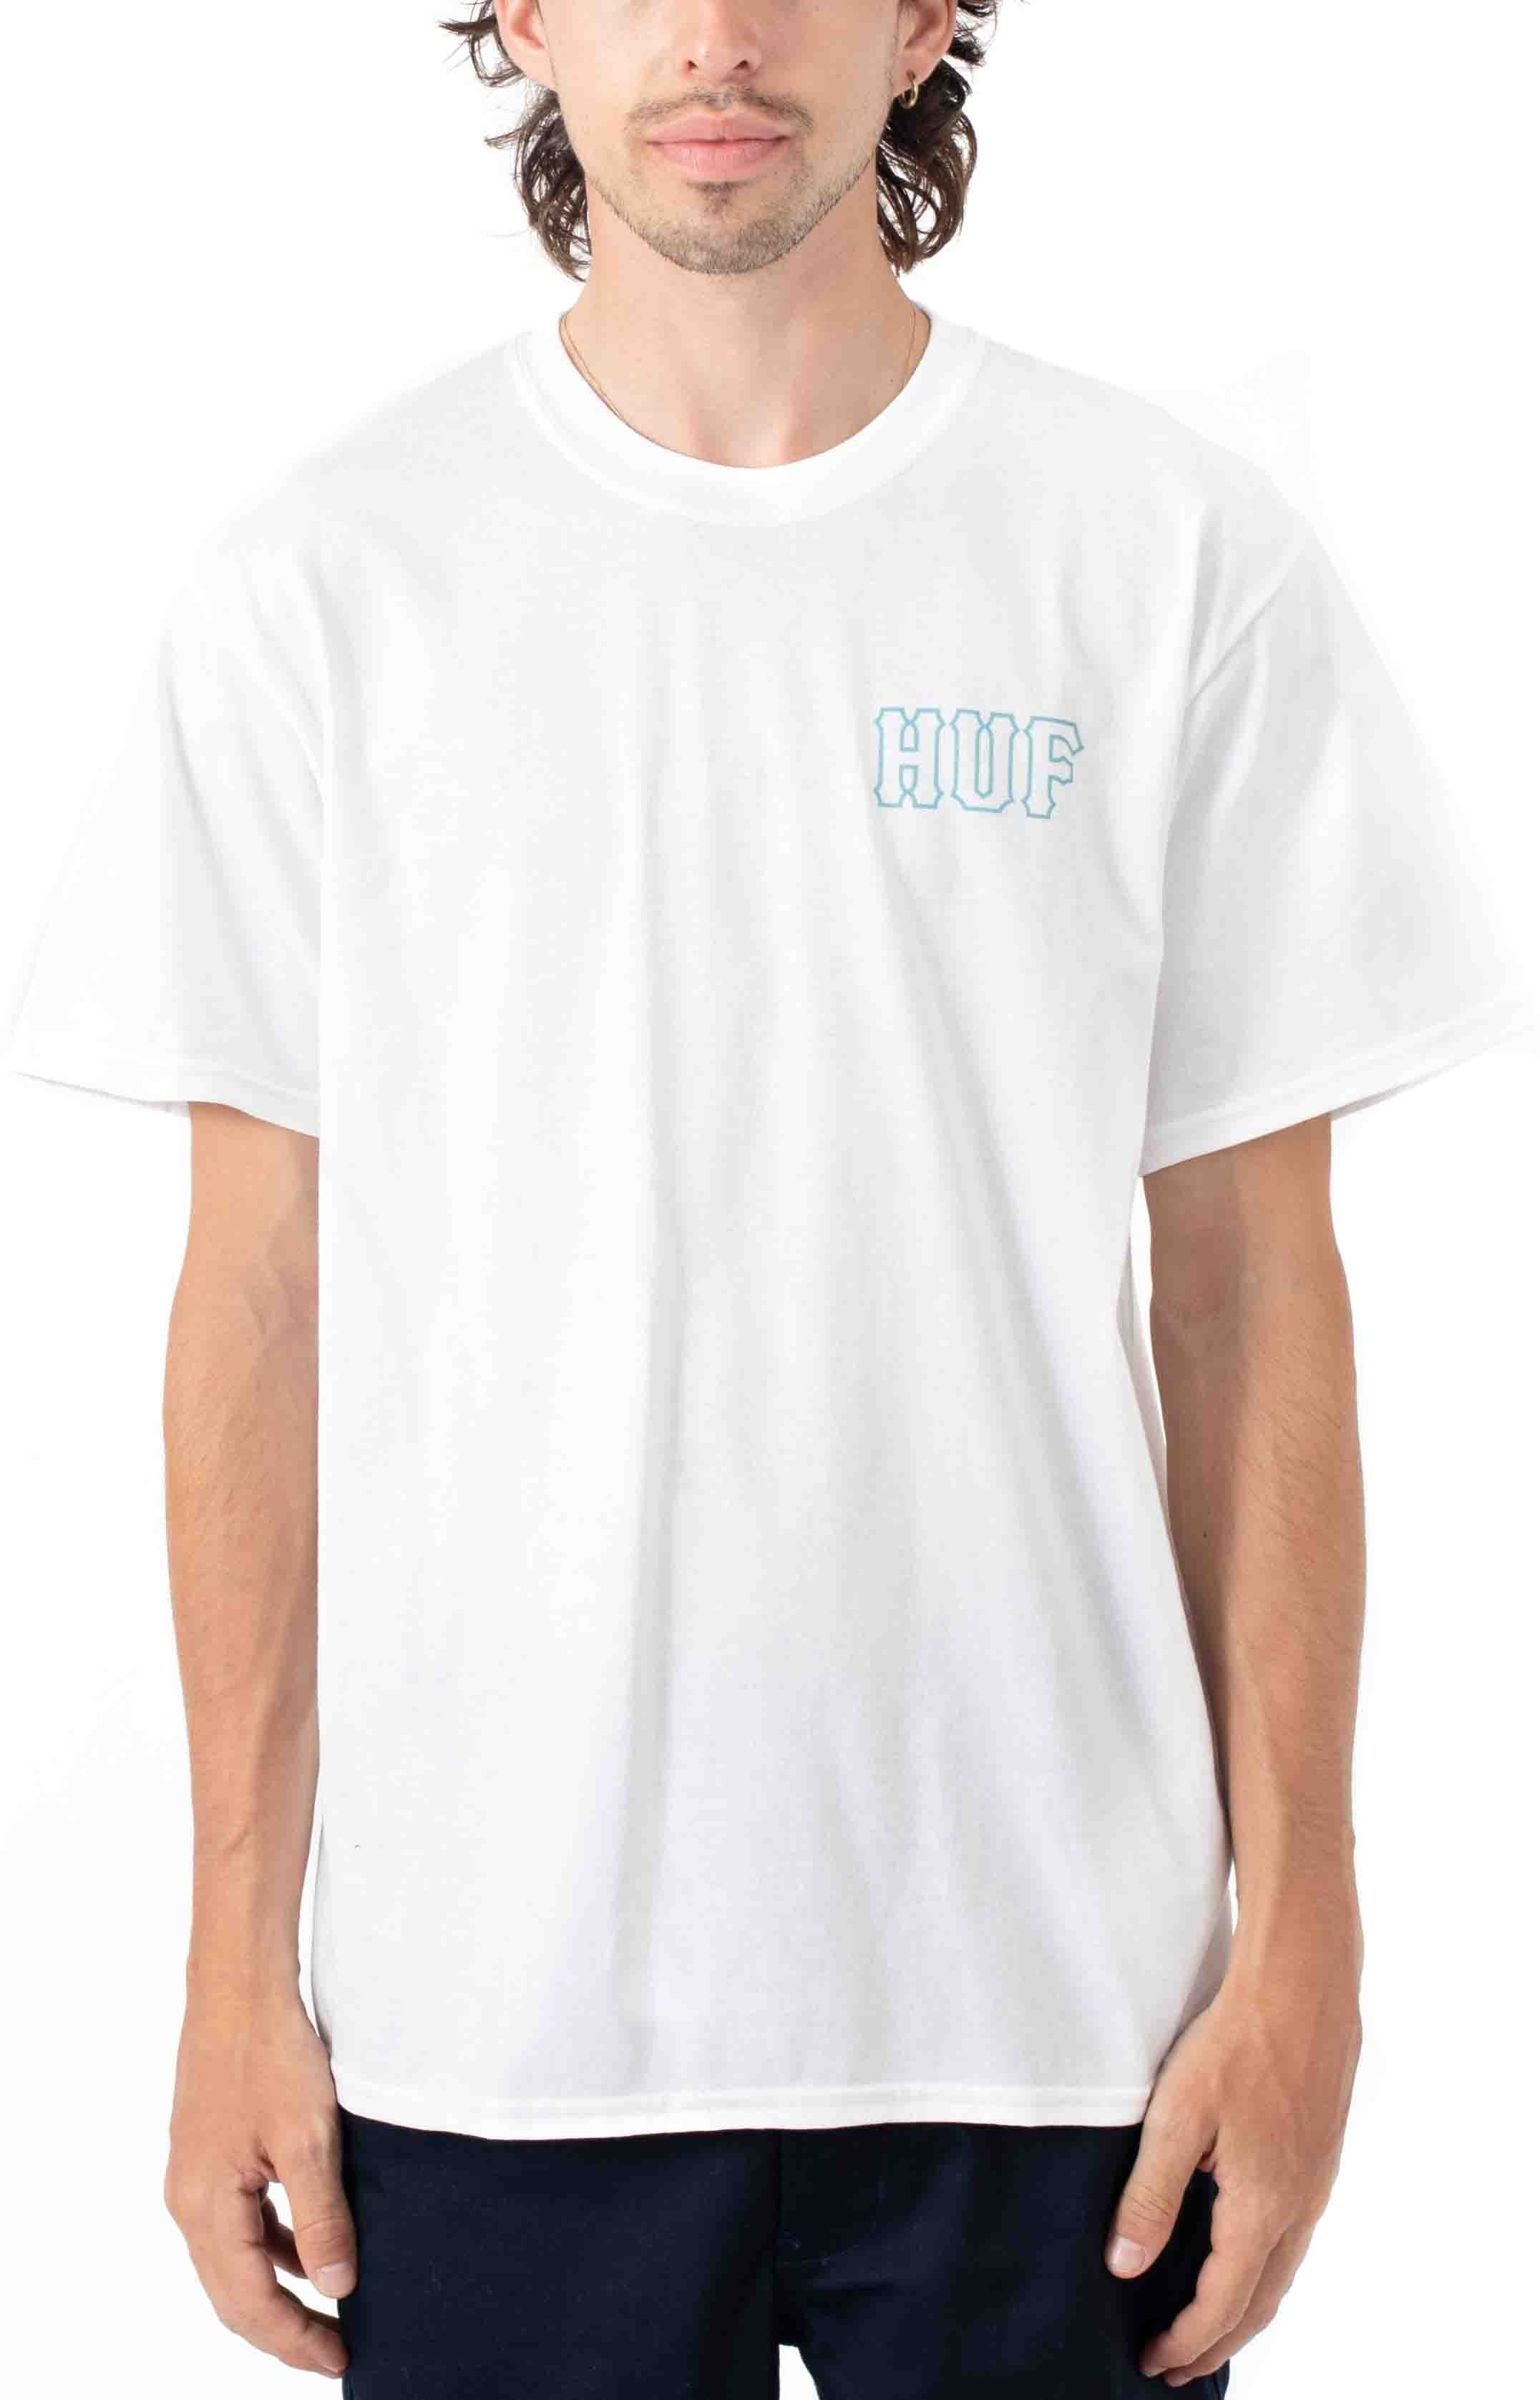 Barb Wire Classic H T-Shirt - White  2